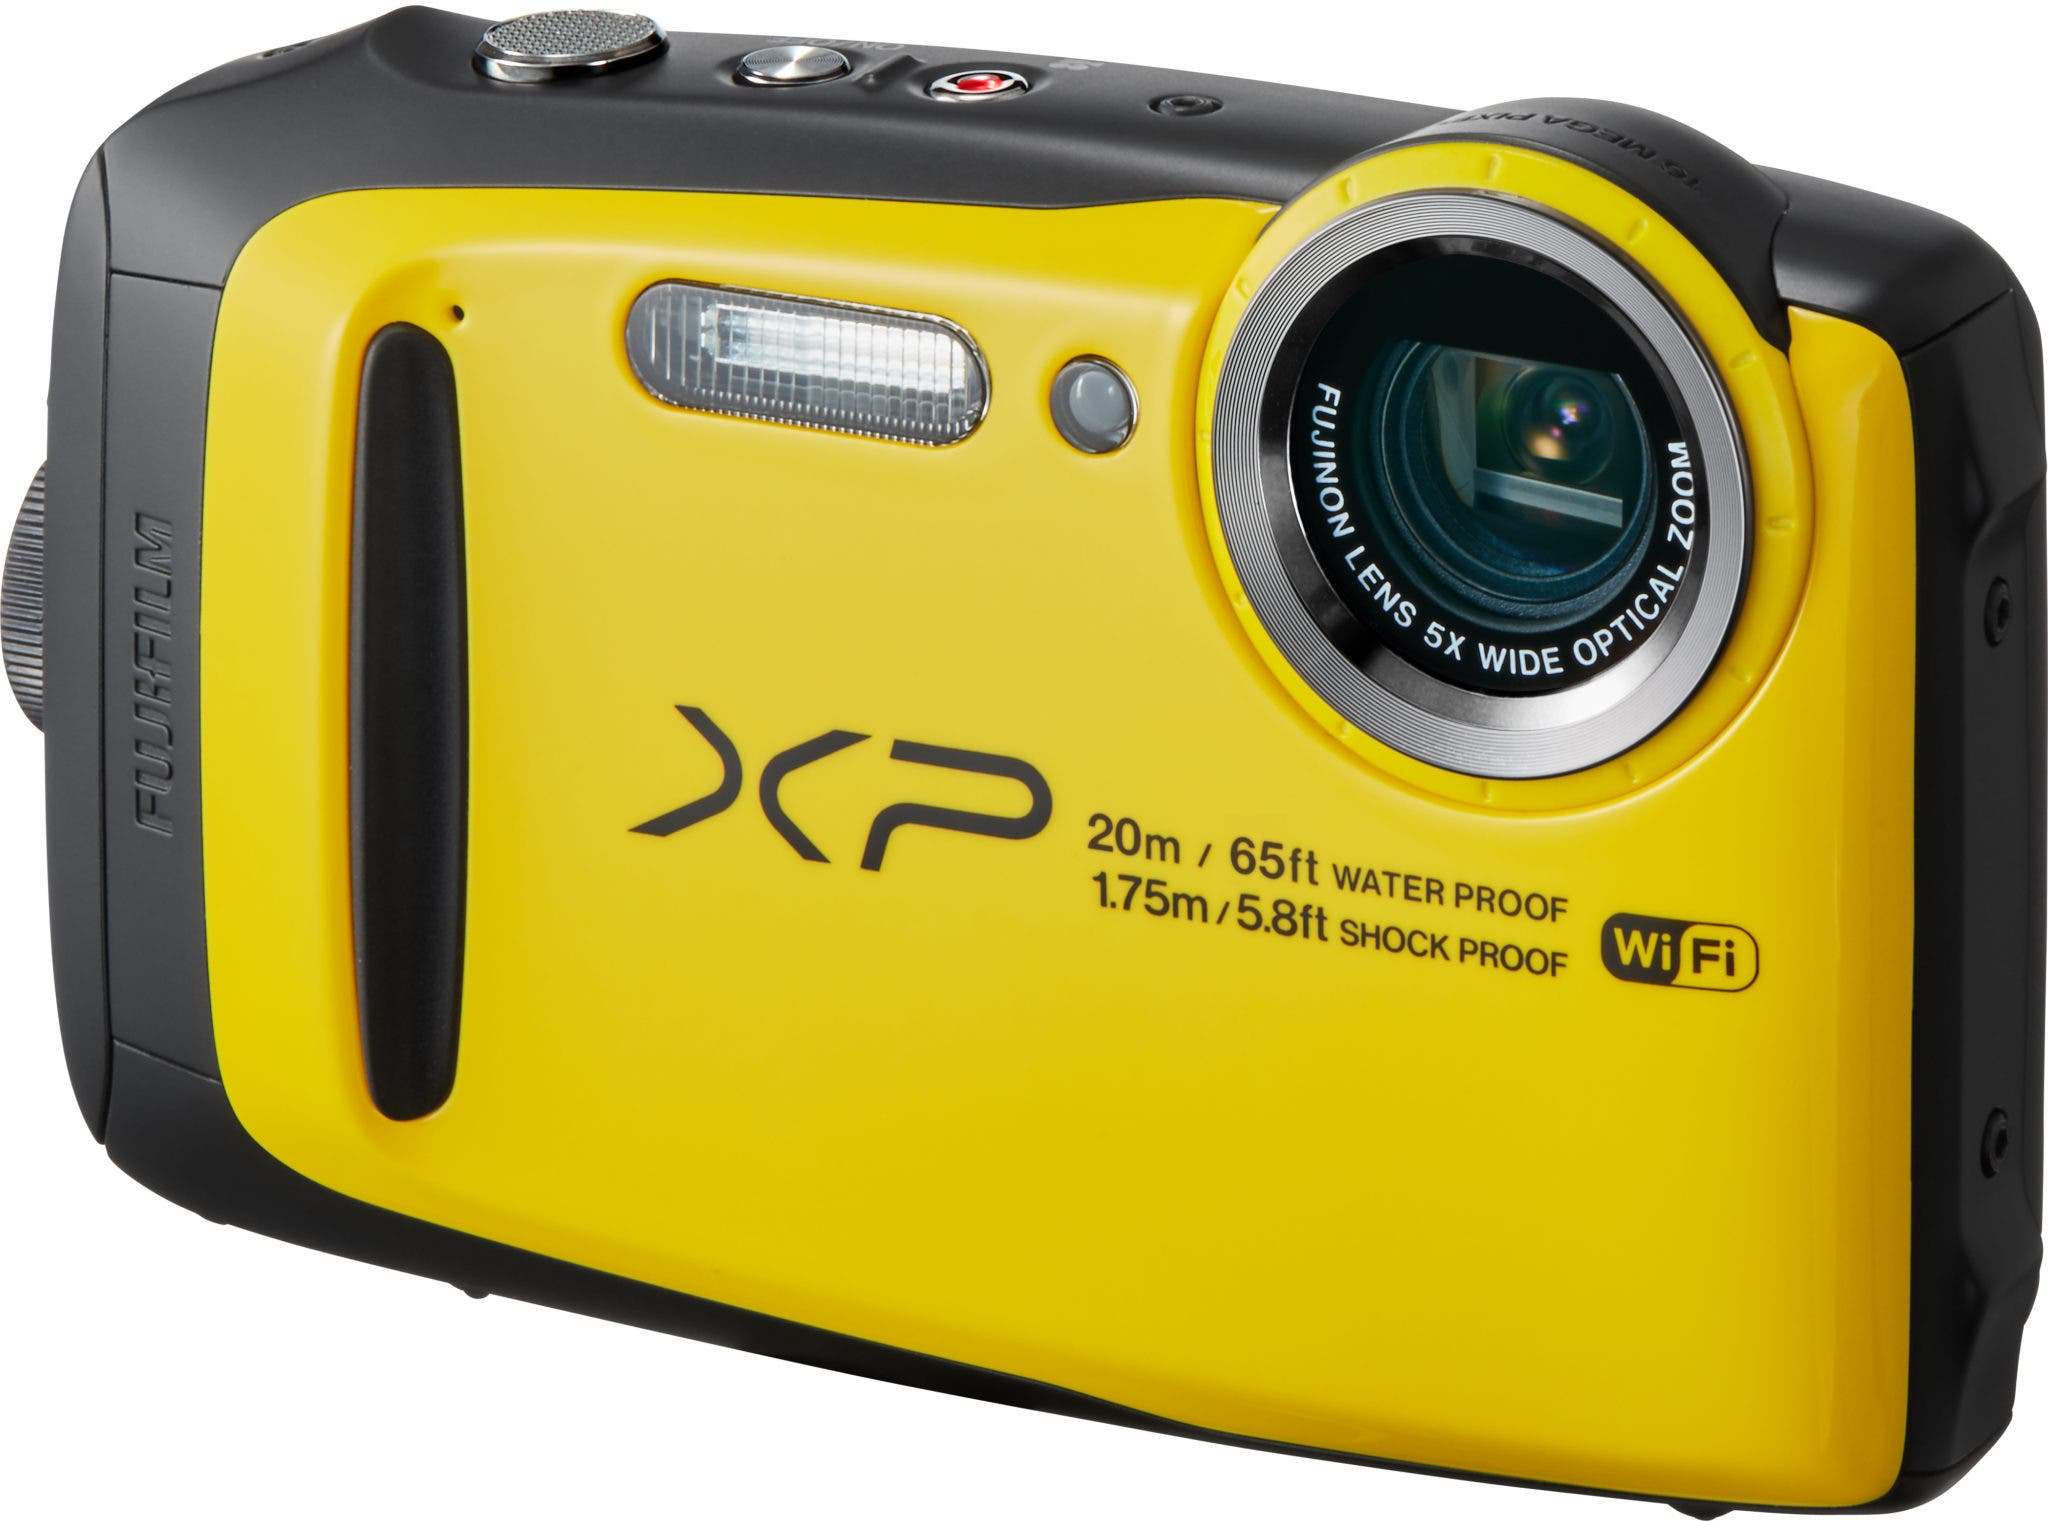 Fujifilm Announces All-New Rugged and Waterproof Finepix XP120